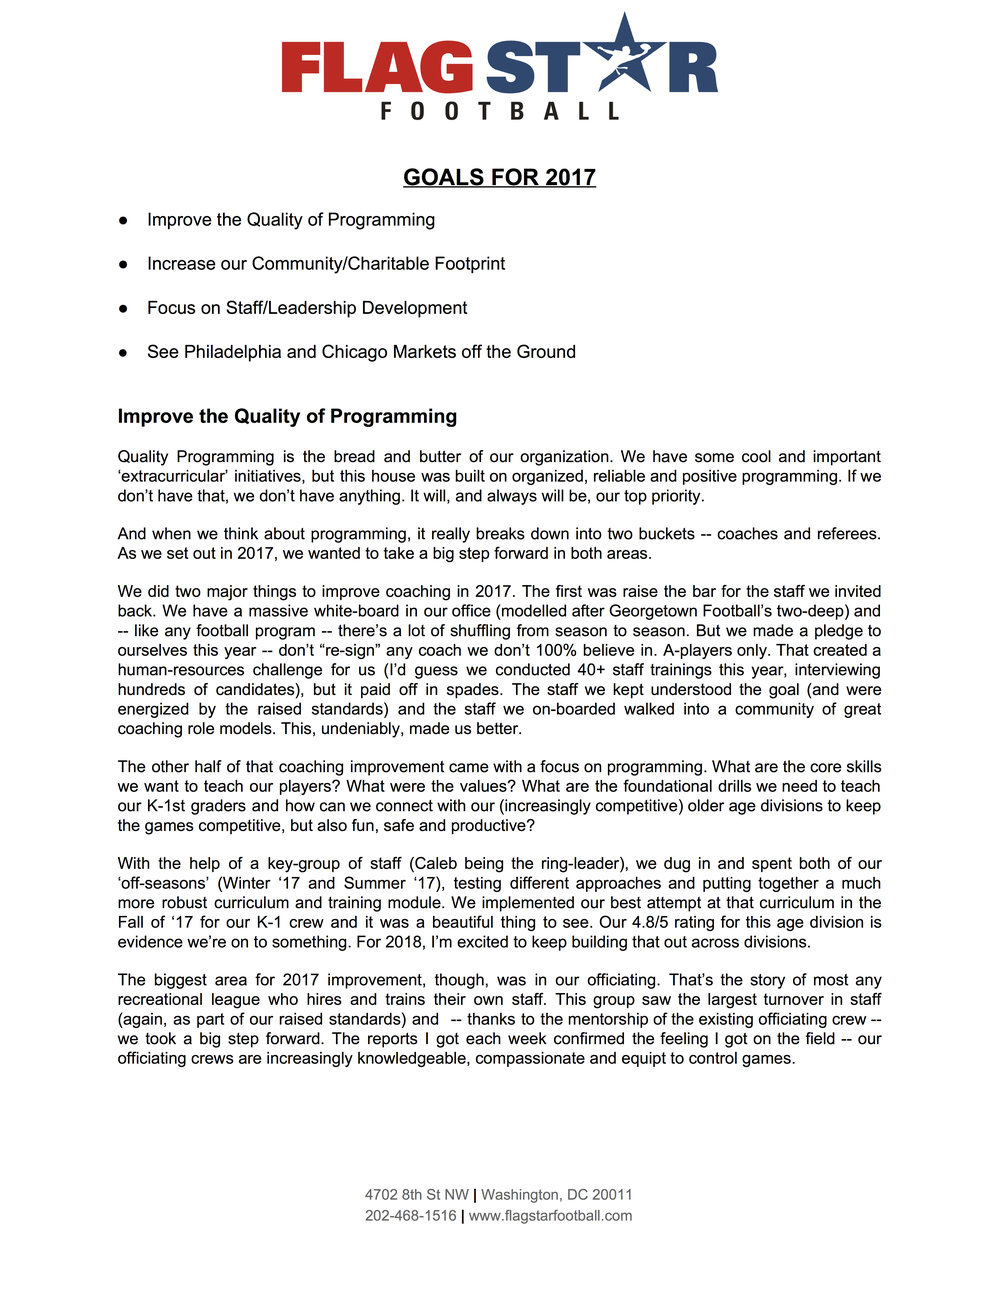 2017 Letter to Shareholders p2.jpg